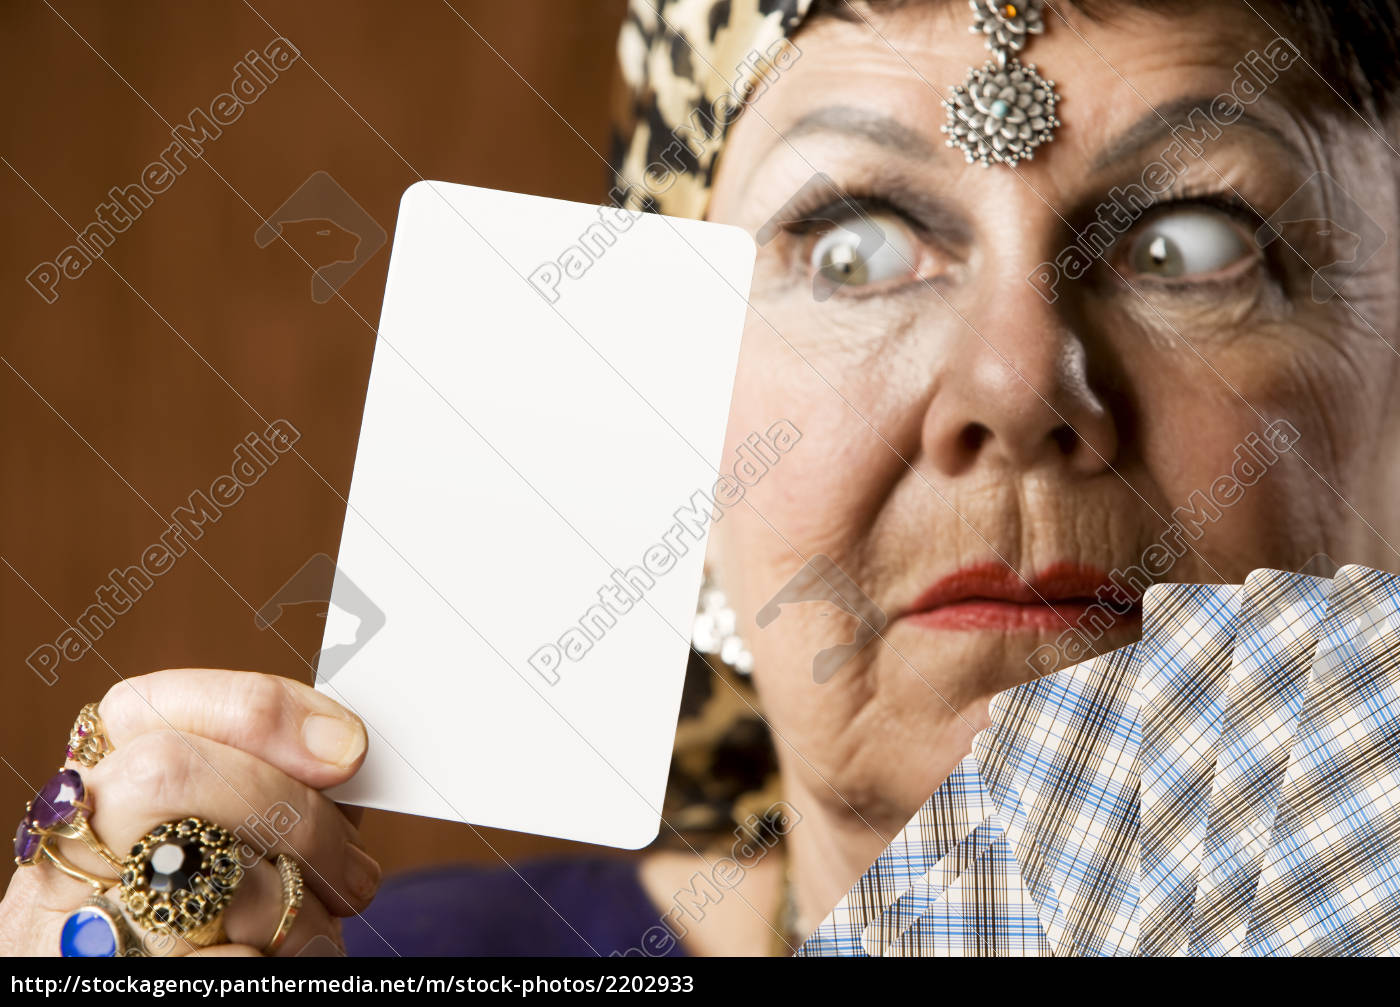 fortune, teller, with, blank, tarot, card - 2202933